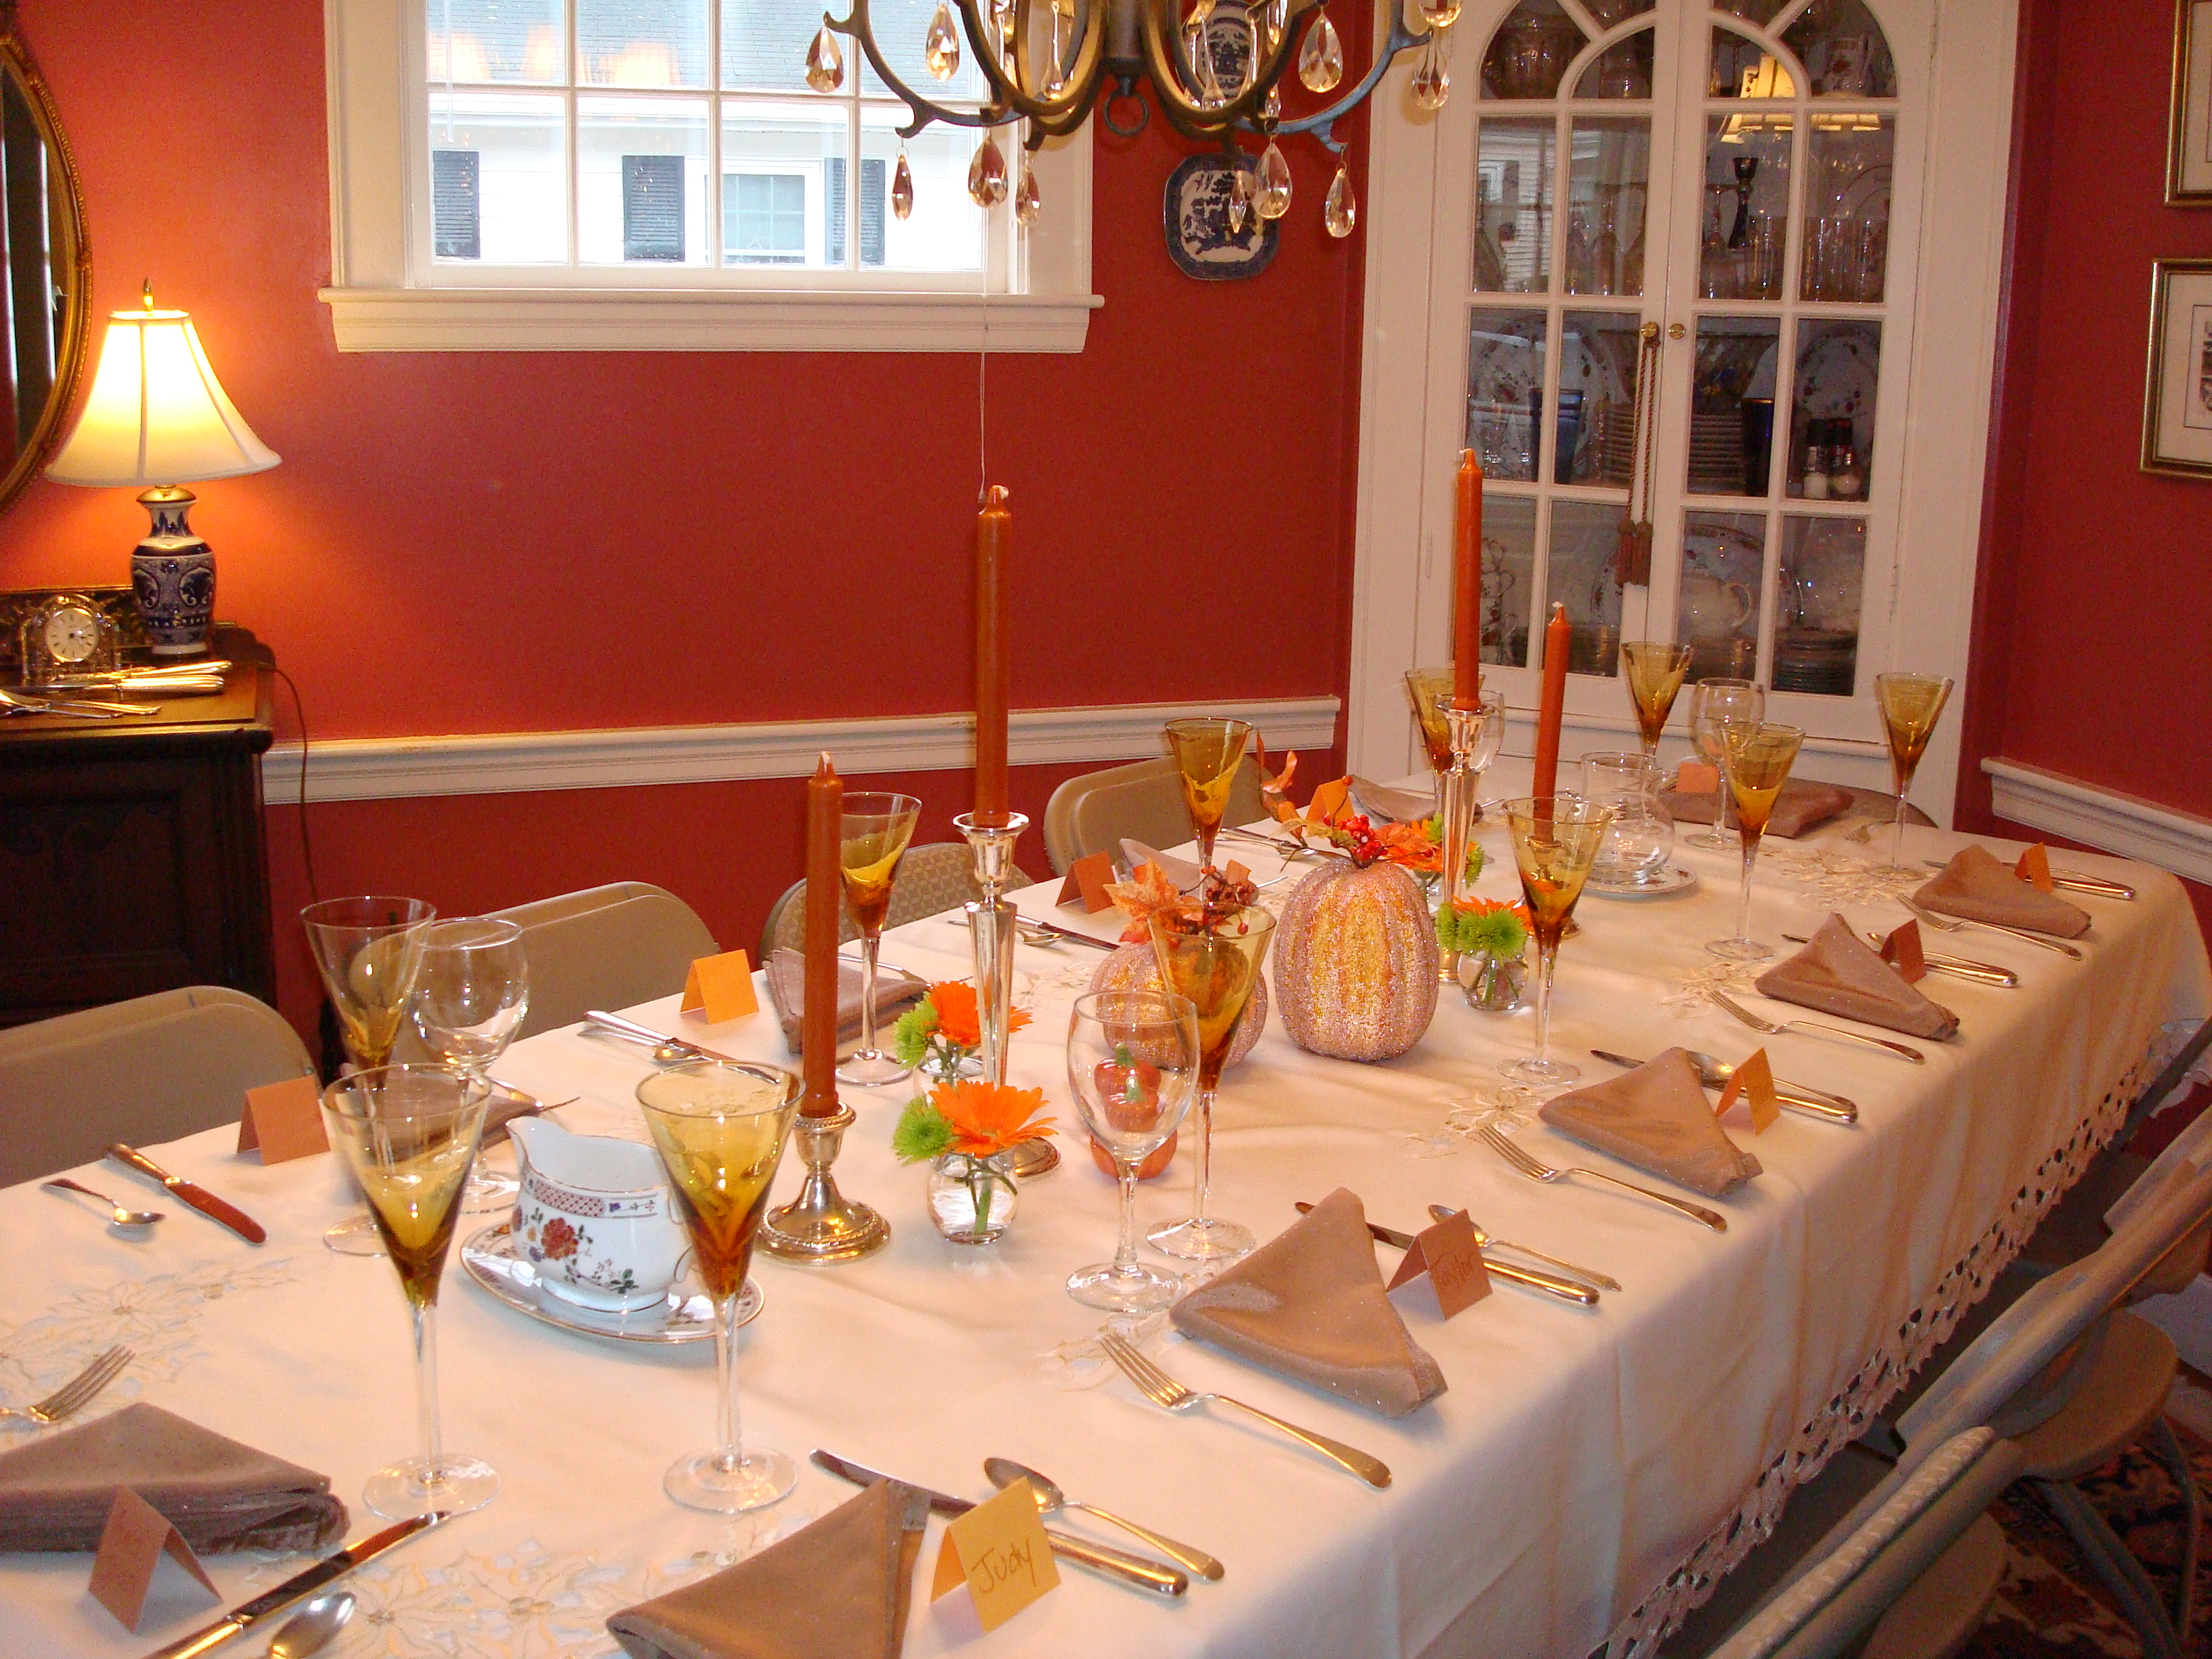 301 moved permanently Thanksgiving table